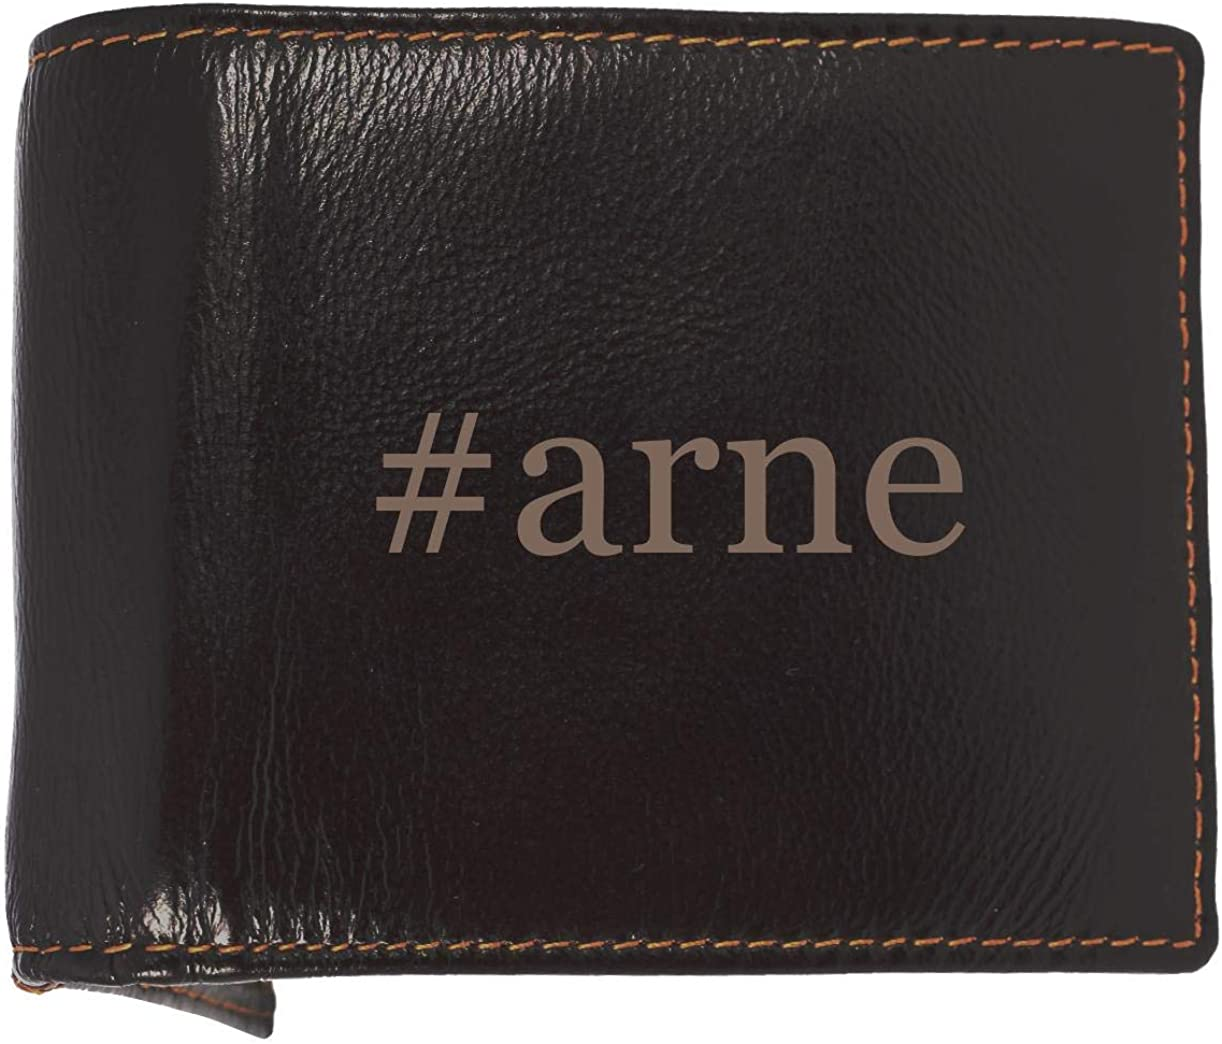 #arne - Soft Hashtag Cowhide Genuine Engraved Bifold Leather Wallet 61bu6NfDnoL